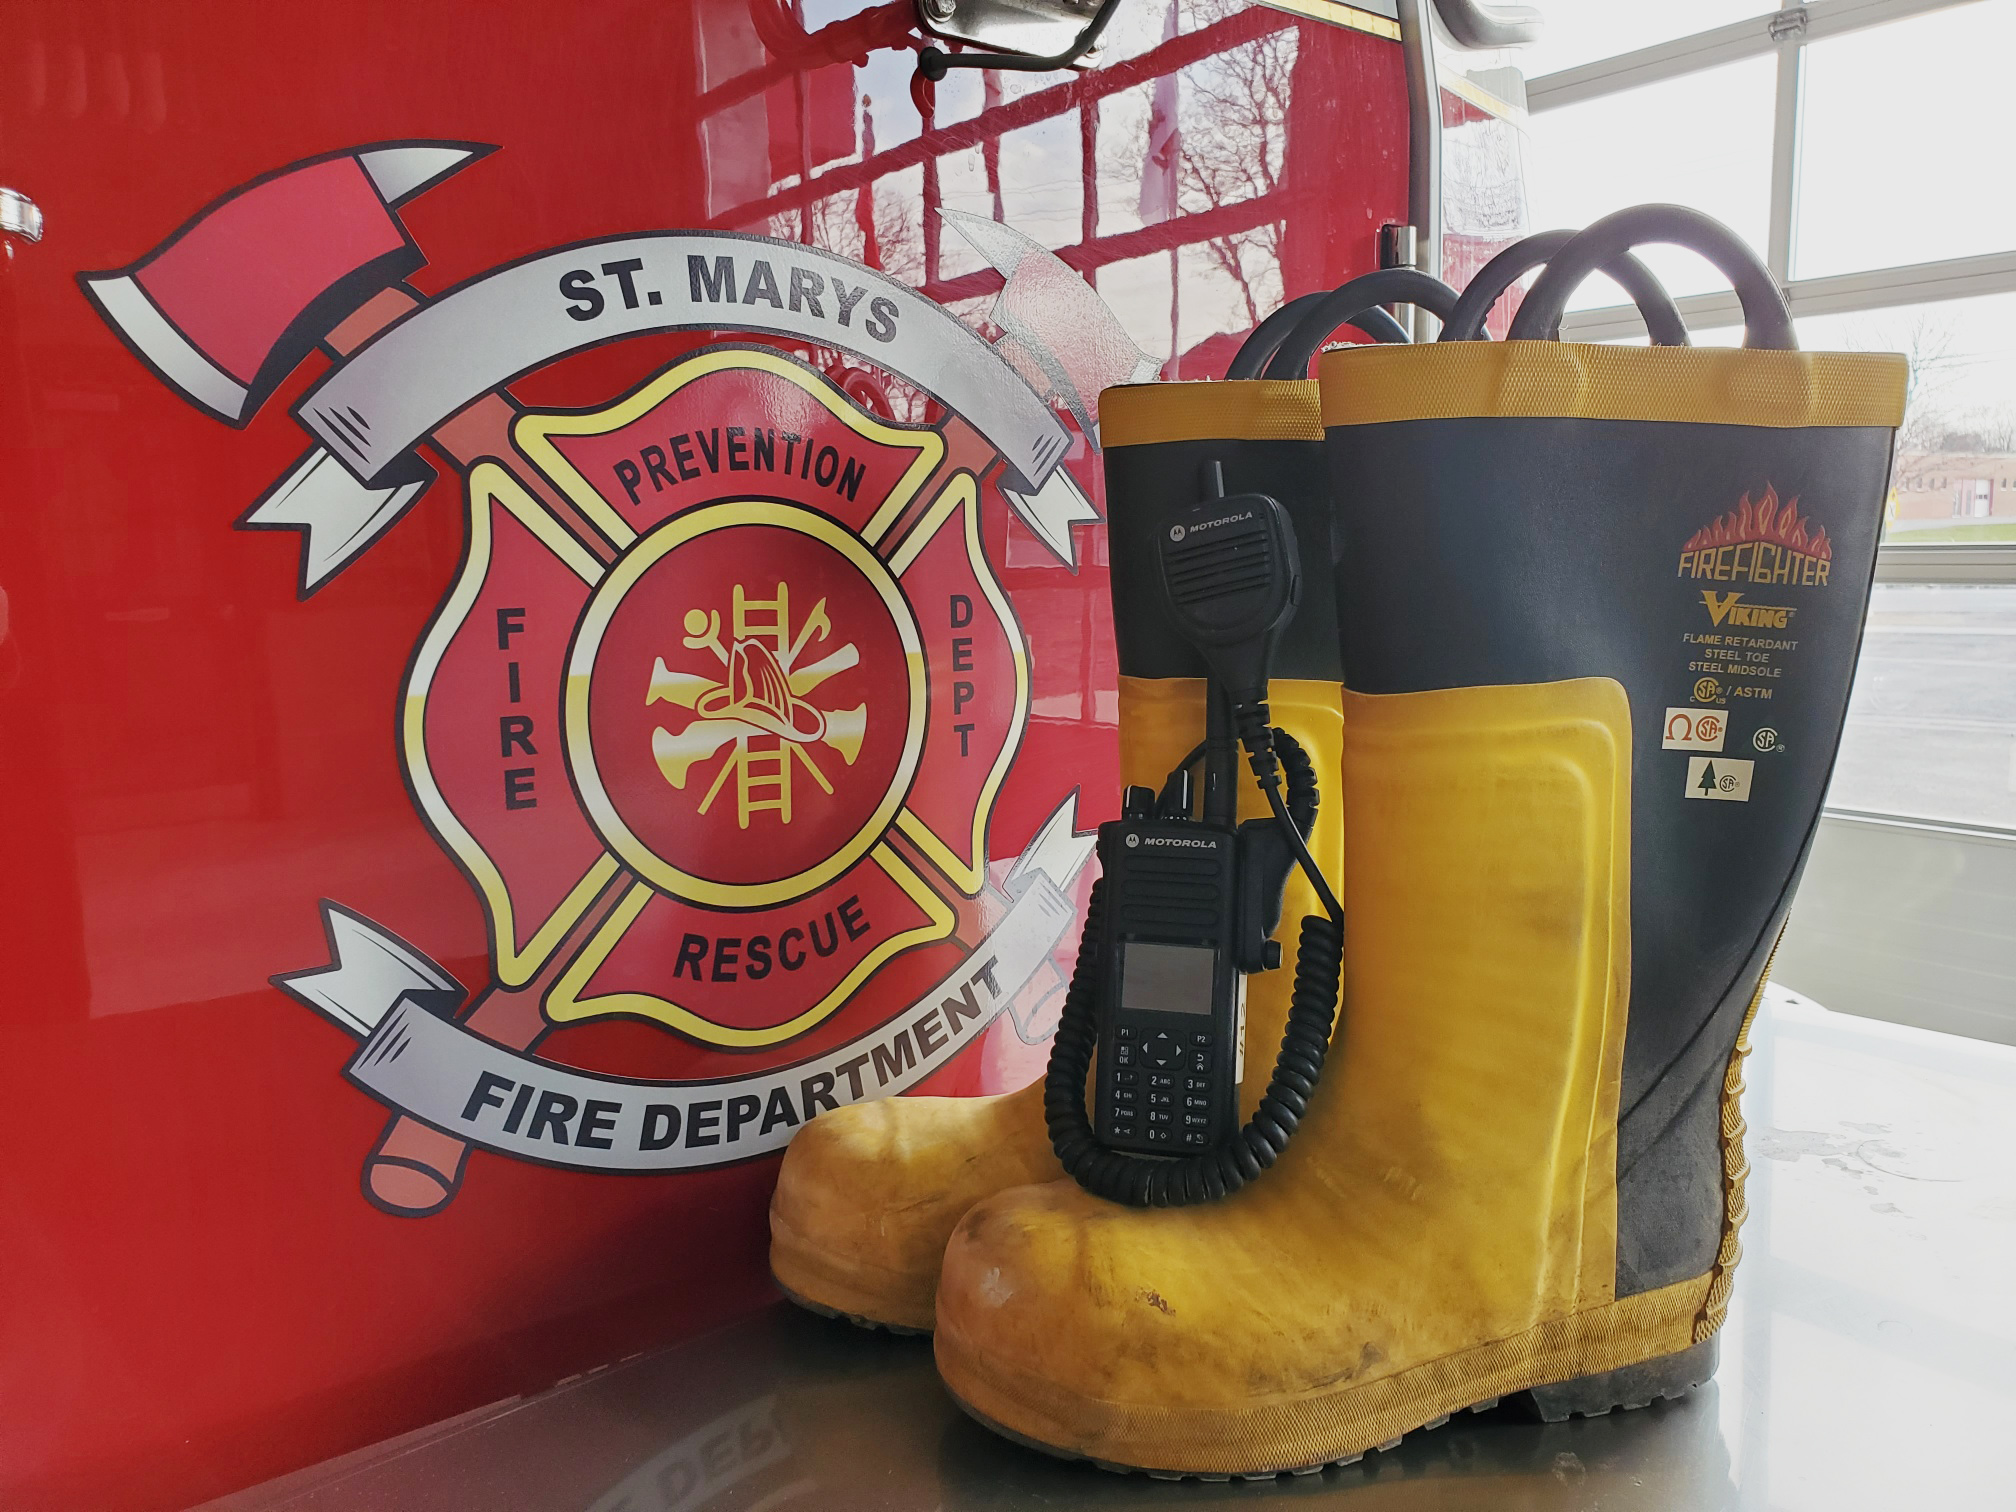 Donation will help buy new boots and communications equipment